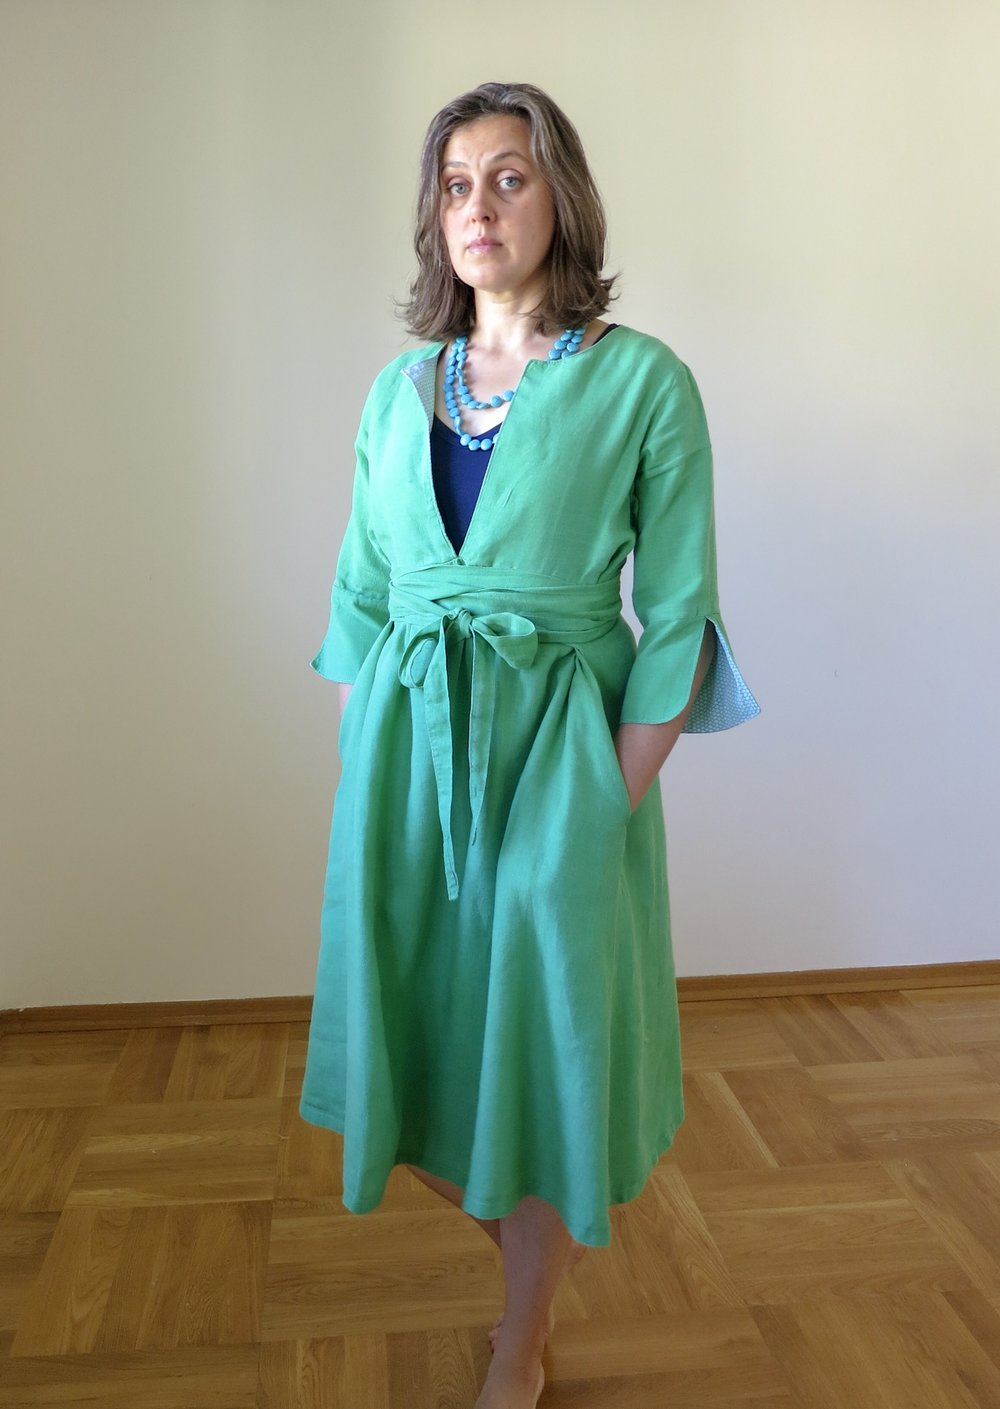 Schoolhouse Tunic pattern turned into a dress with ties and pockets in green linen